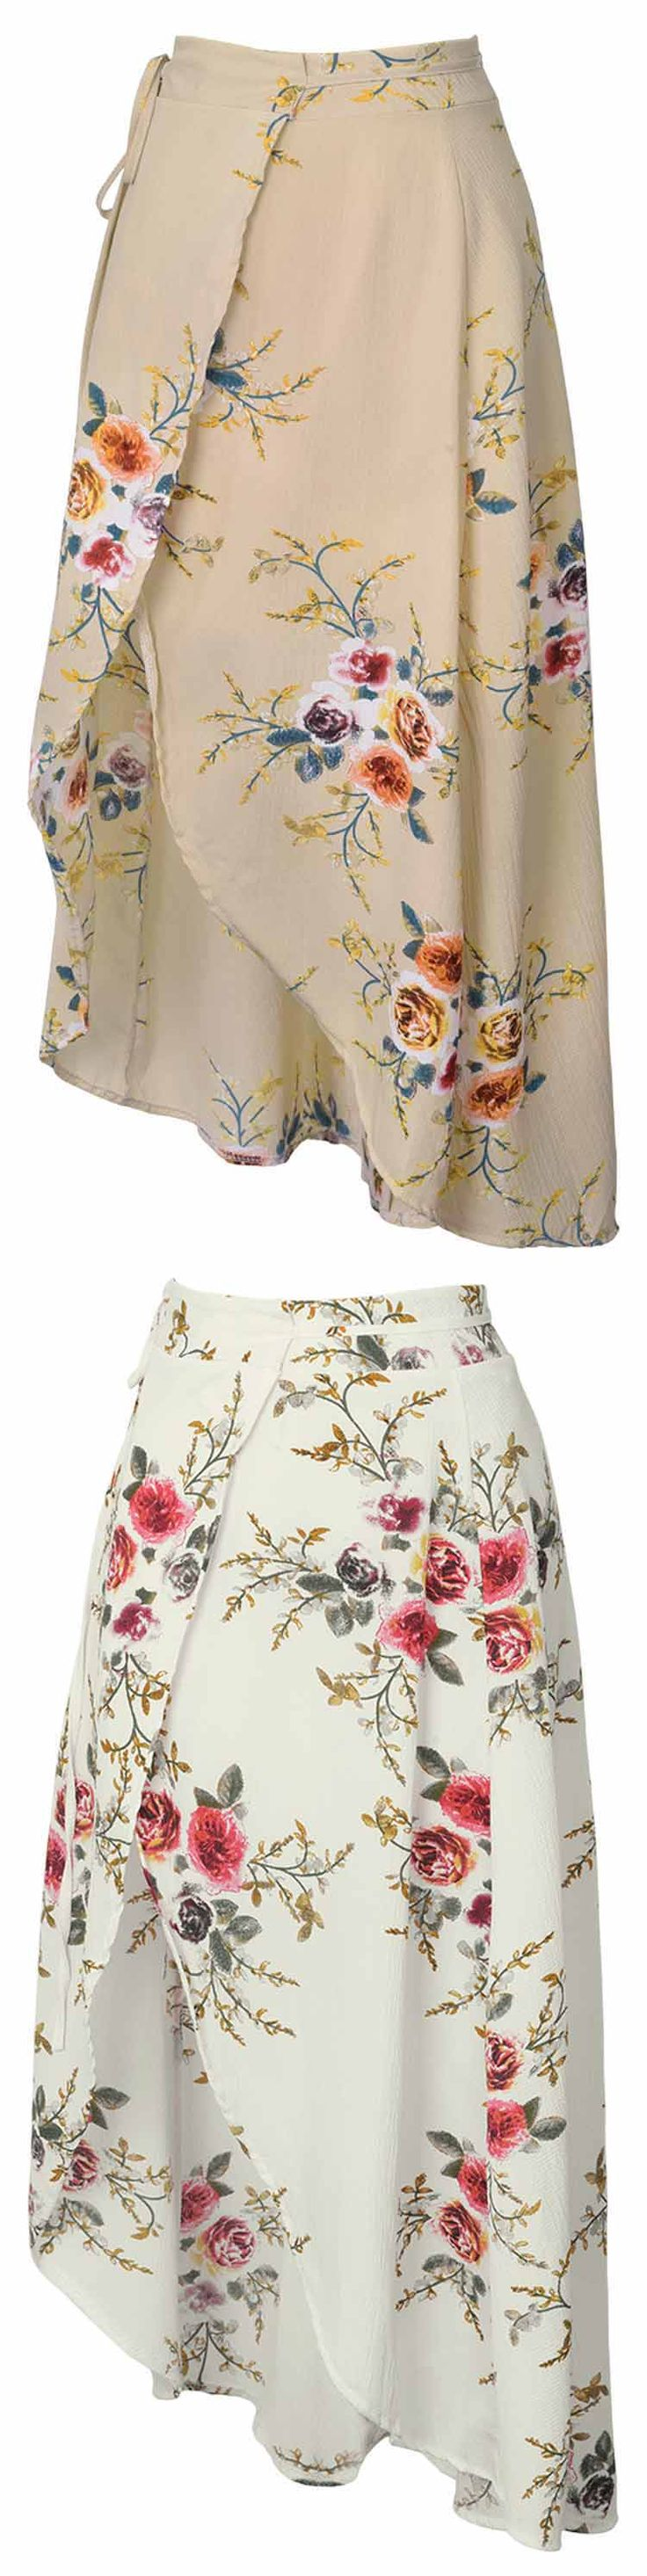 Get some ready for spring break! Only $21.80 & Short Shipping Time! The skirt adds a touch of grace and femininity to your whole look. It features beautiful printing and high-low hem details that are flattering. Take it now at Cupshe.com